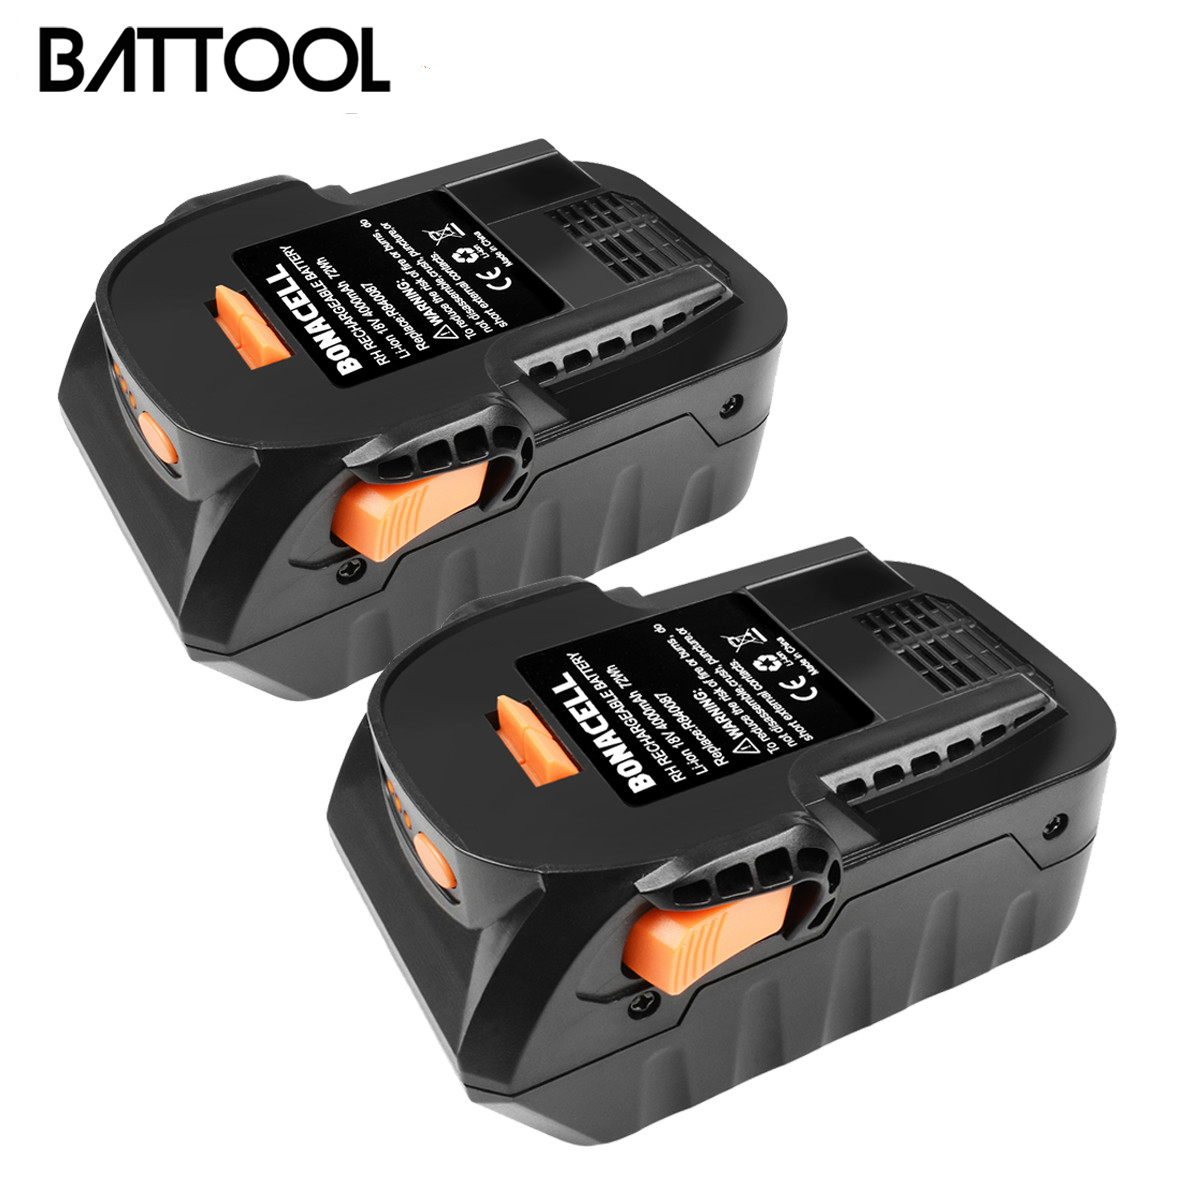 BATTOOL 6000mAh 18V Li-ion For RIDGID R840083 R840085 R840086 R840087 Rechargeable Power Tool Battery Series AEG Series L30